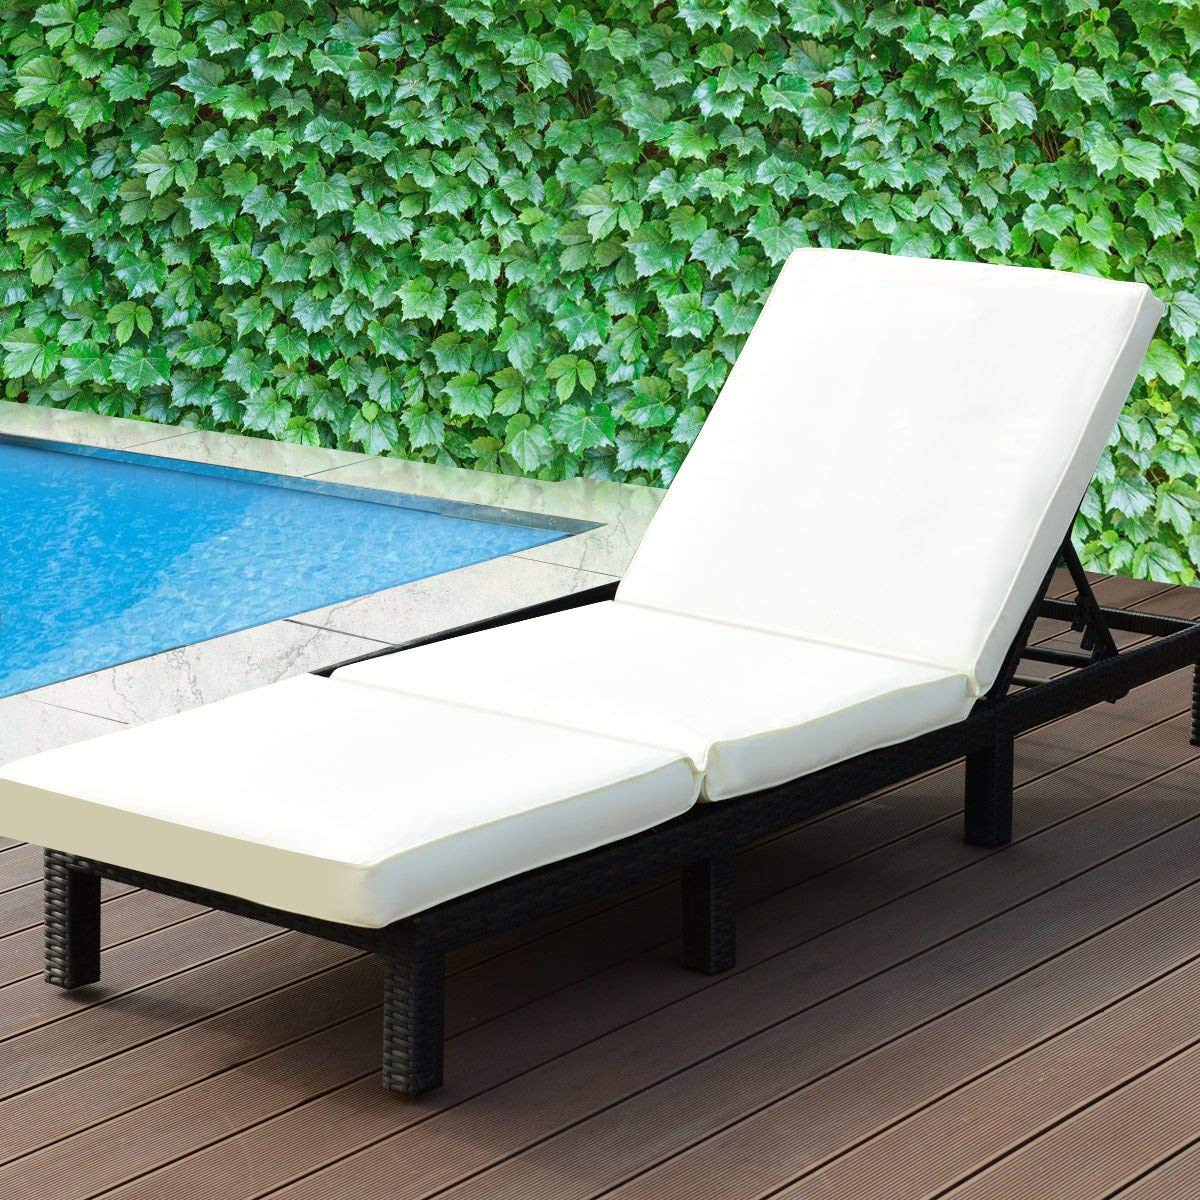 KCHEX>Patio Adjustable Wicker Chaise Lounge Poolside Couch Furniture with Cushion>This is Our Outdoor Adjustable Patio Pool Chaise Lounge, which is Really Utility and Functional for Your Daily Life.